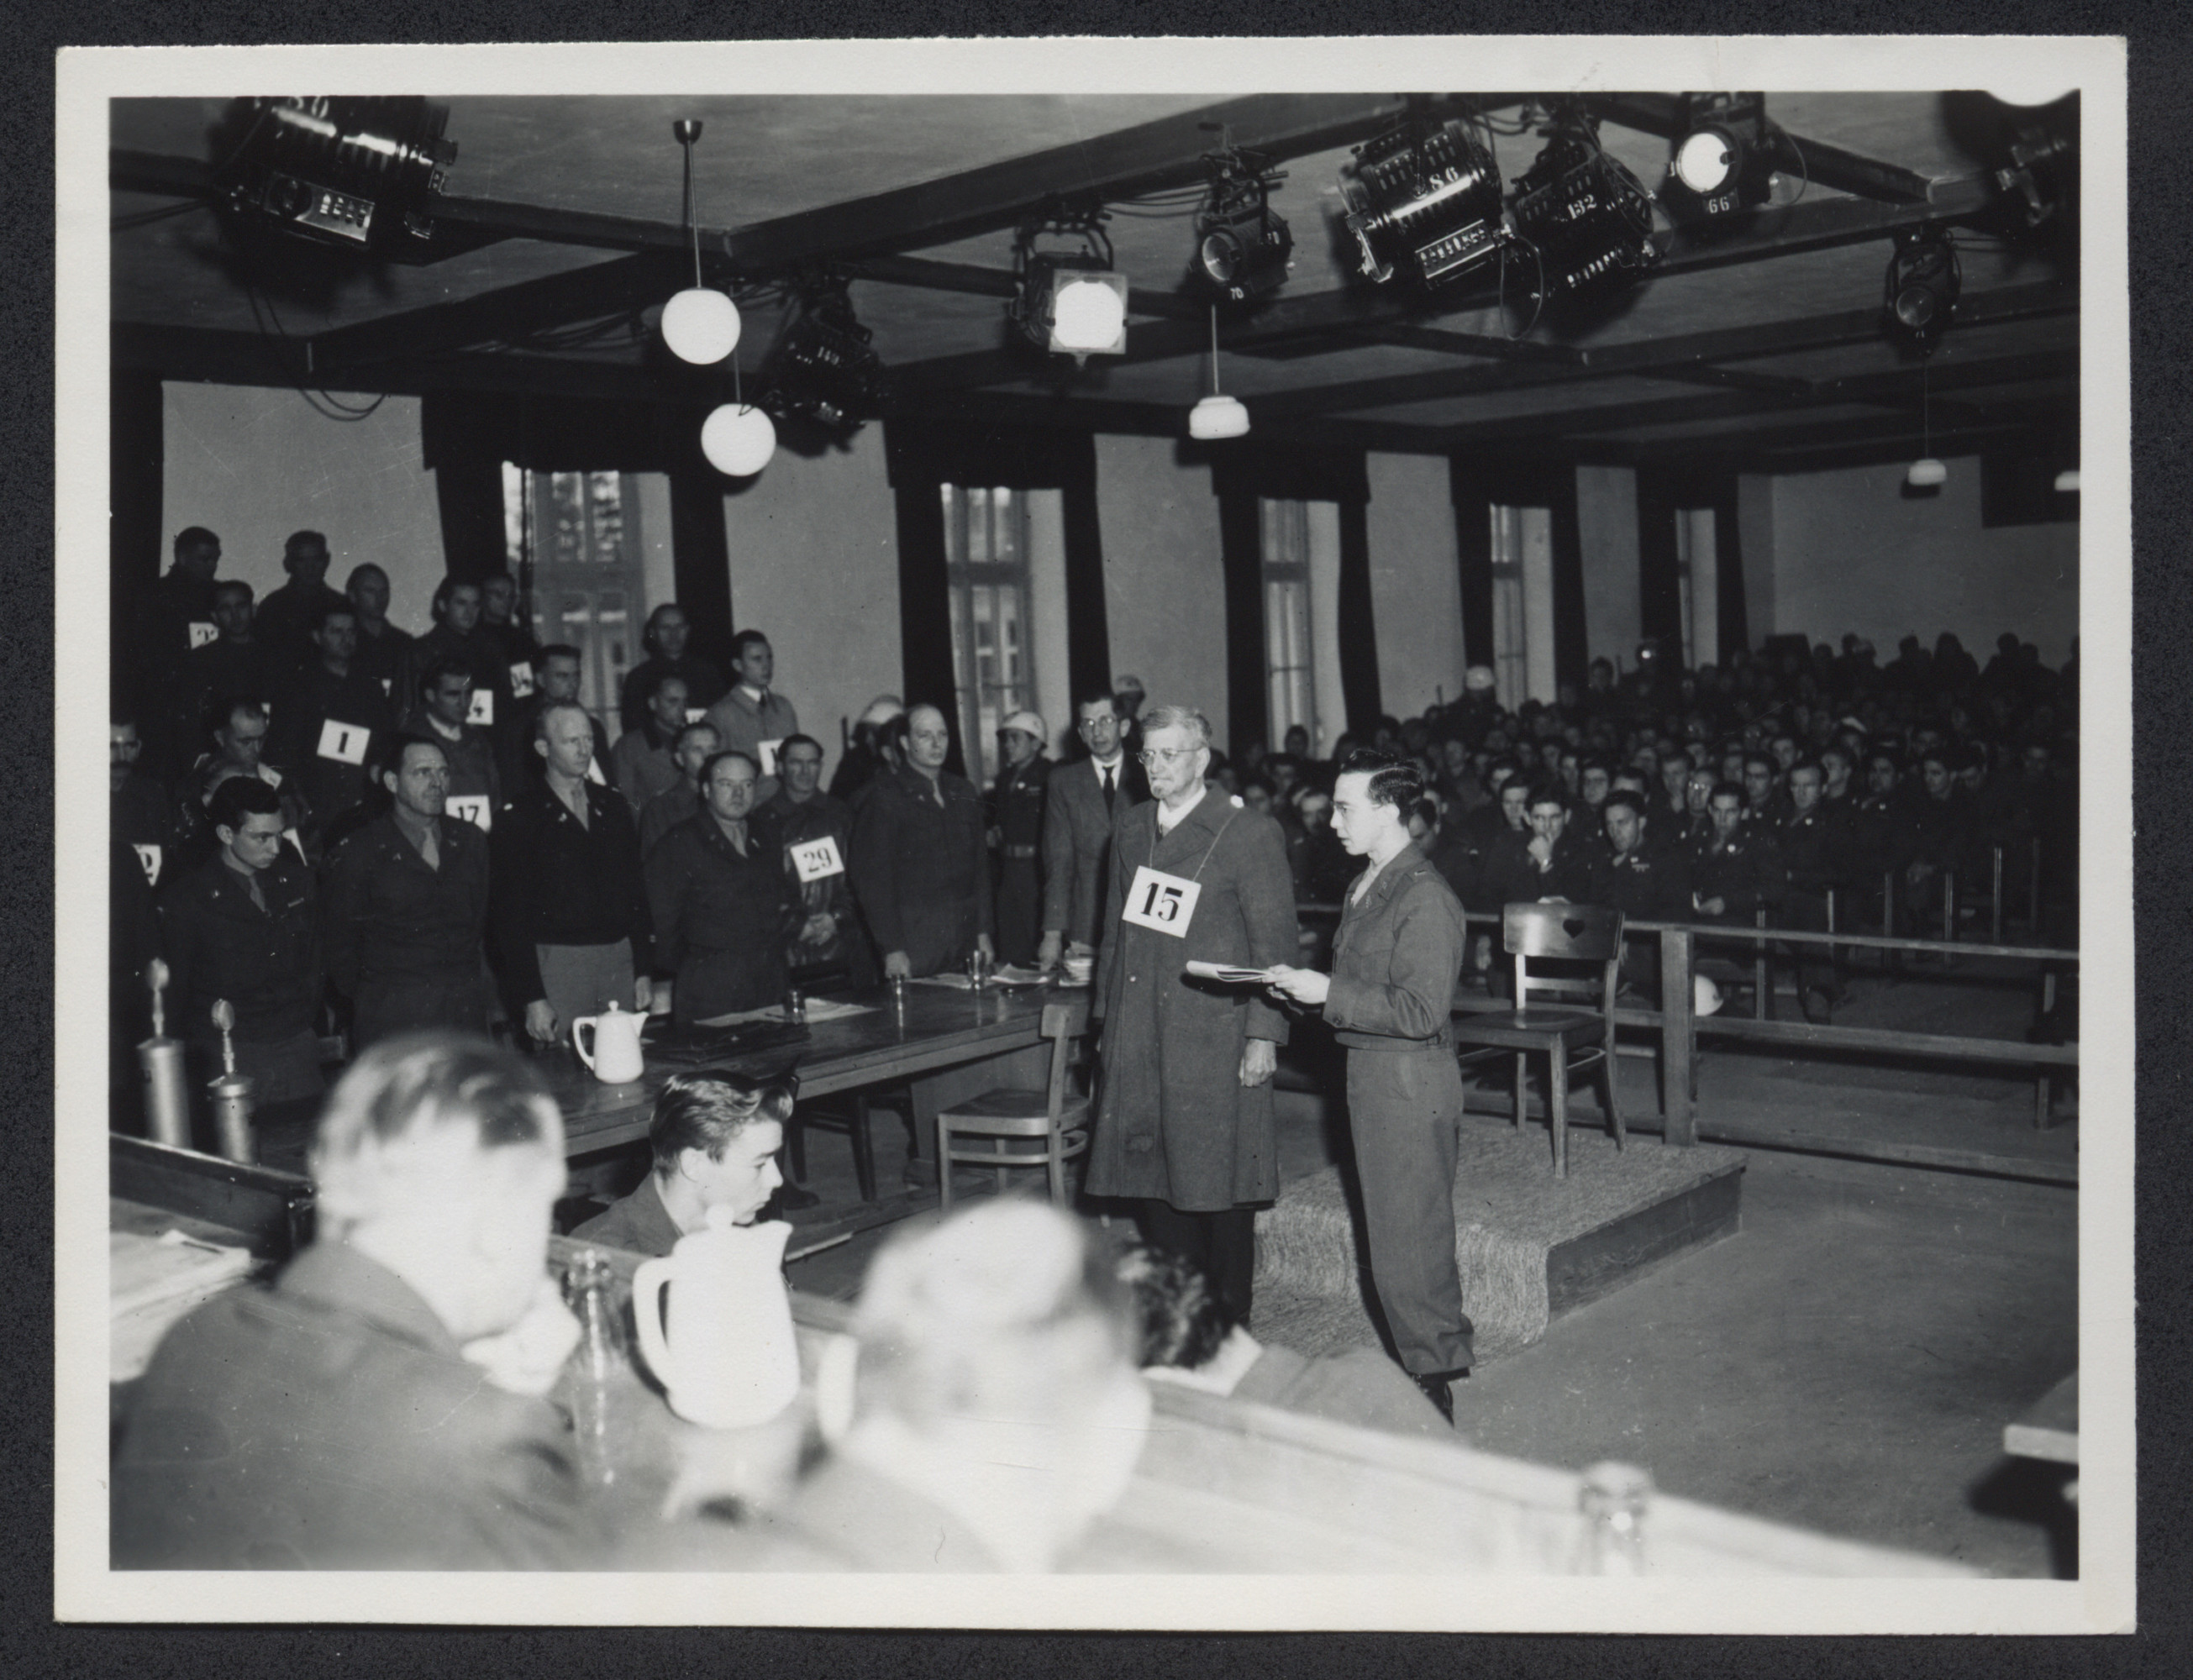 Dr. Klaus Schilling appears before the court at the Dachau trial.